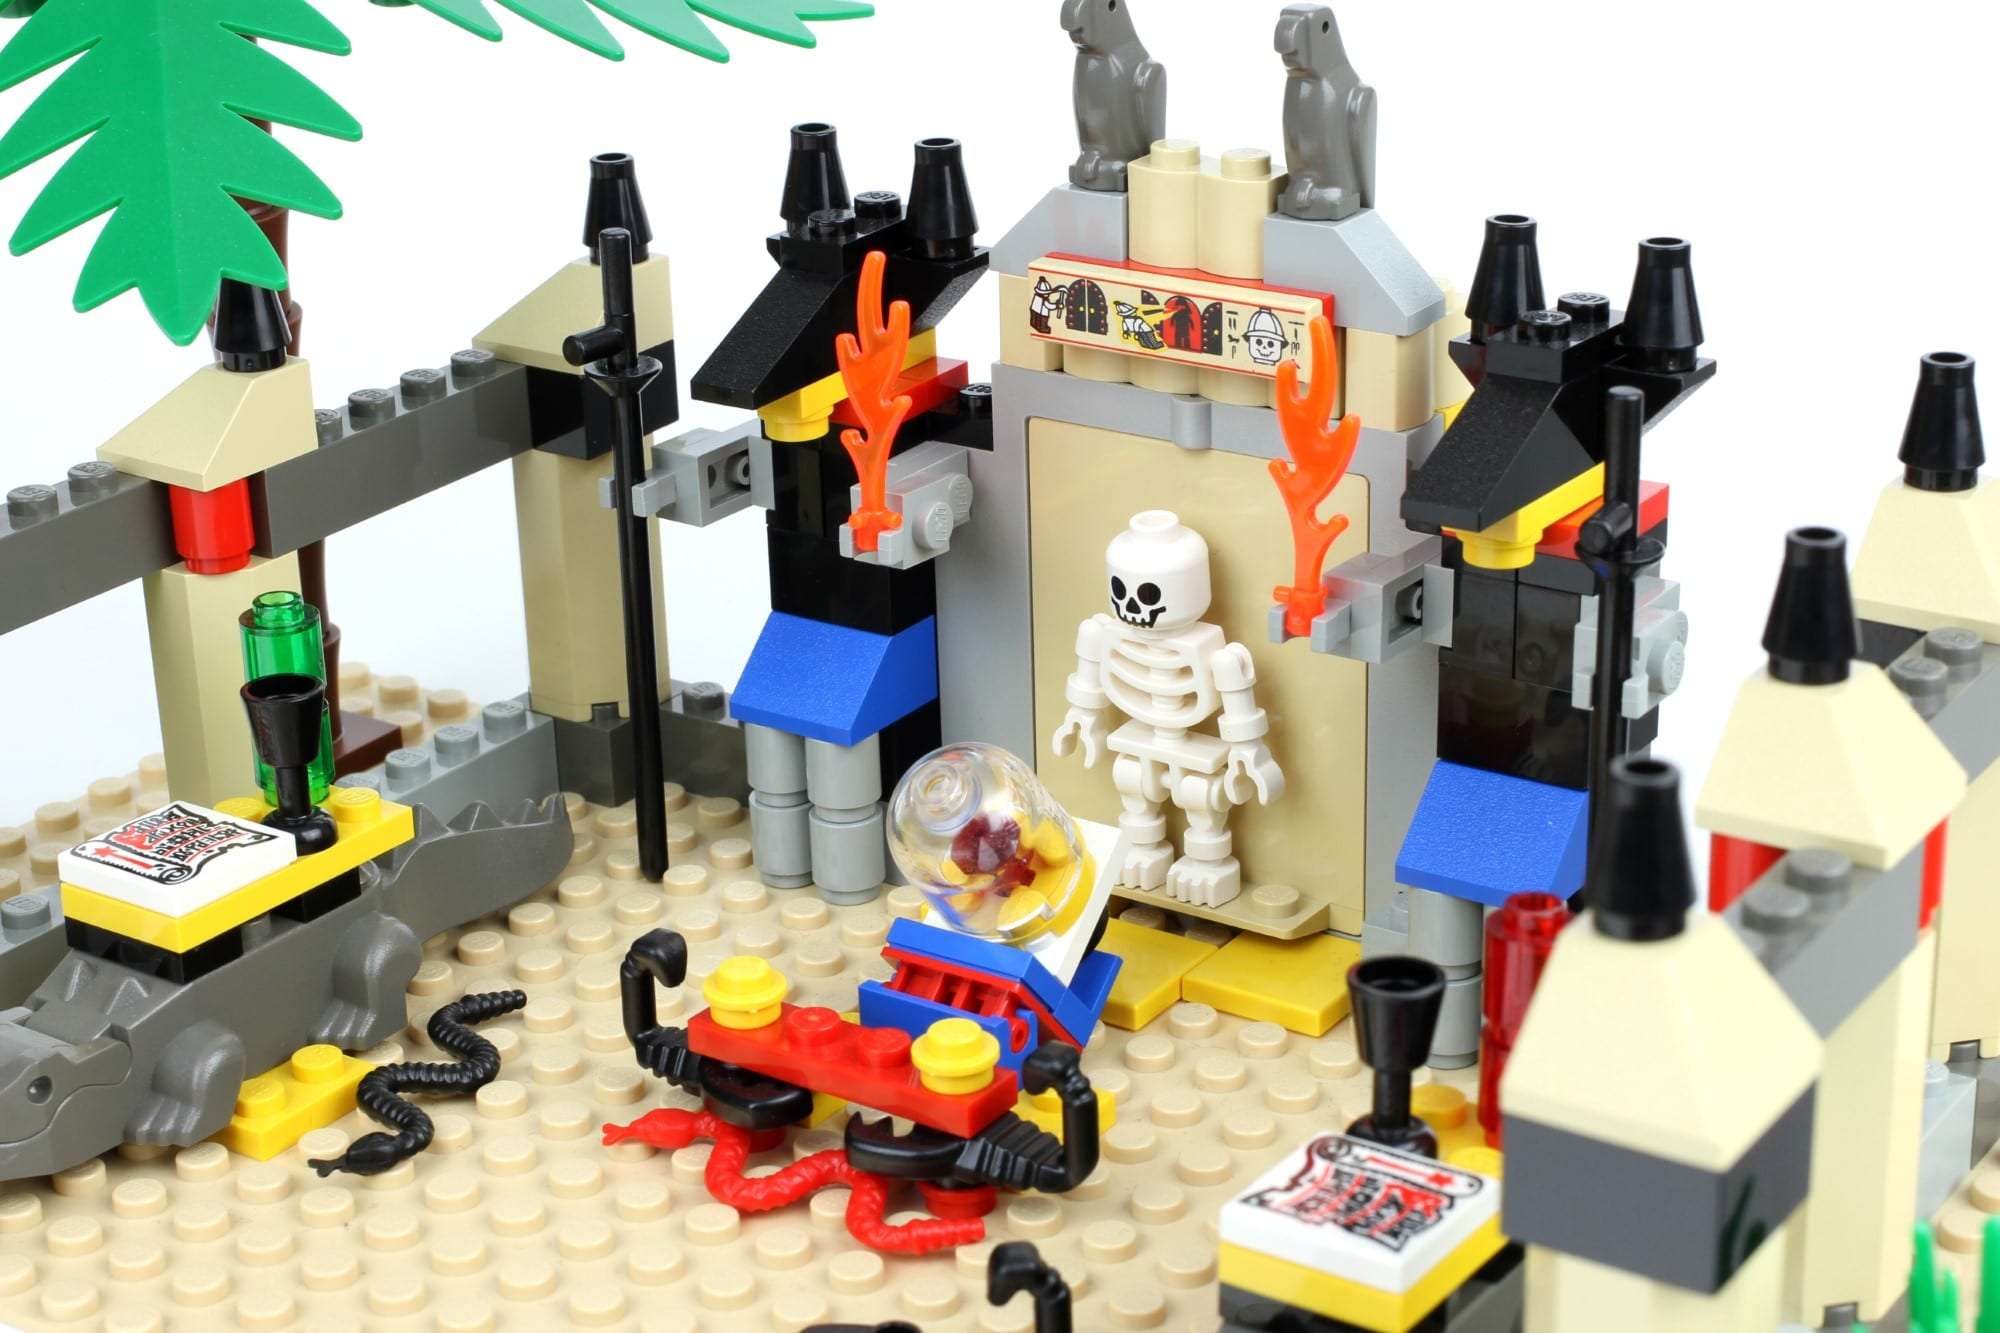 LEGO Fairground Collection 10273 Haunted House Vergleich Anubis Köpfe